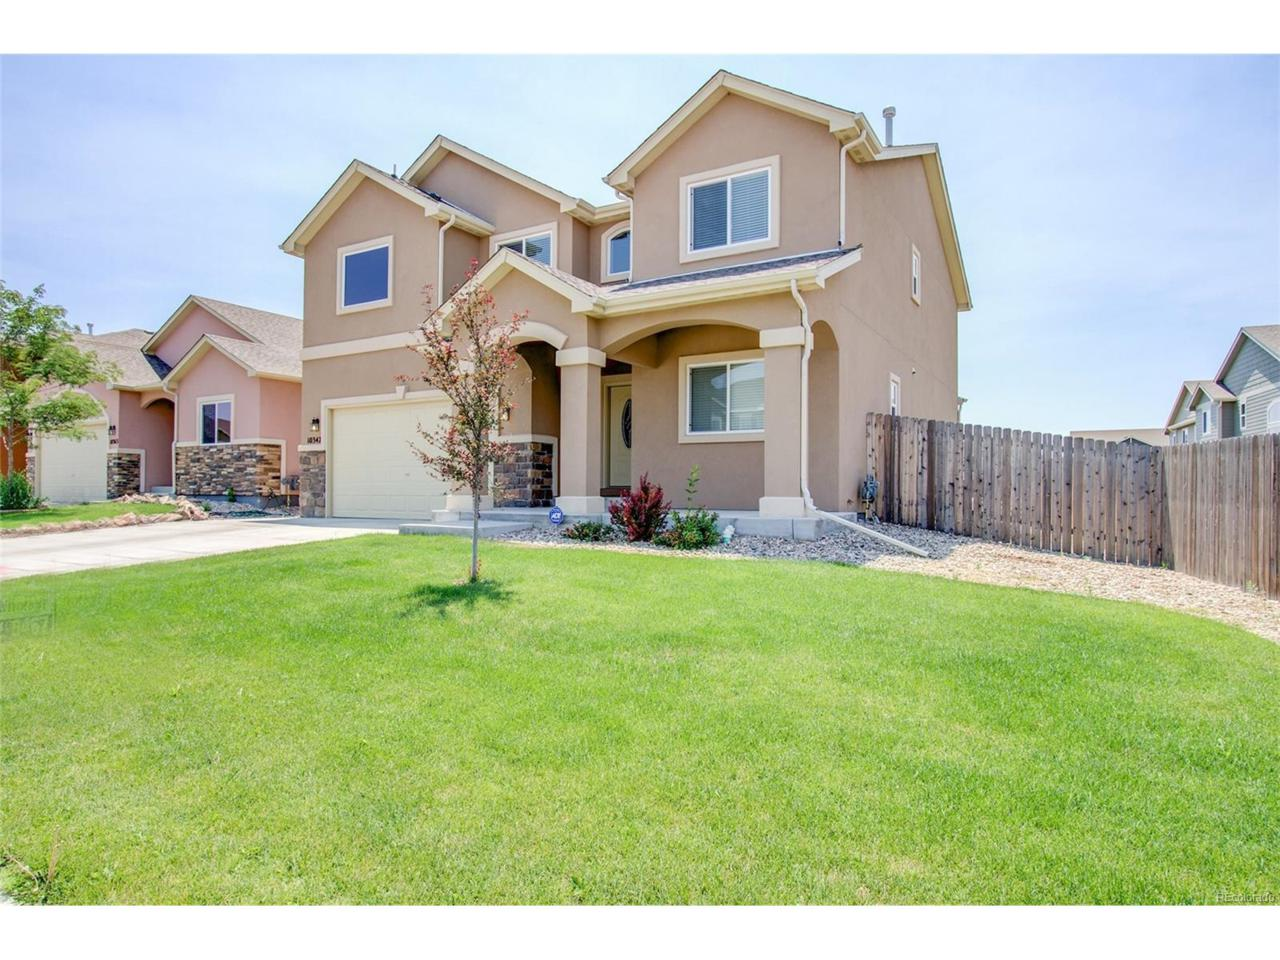 10347 Sentry Post Place, Colorado Springs, CO 80925 (MLS #4103538) :: 8z Real Estate